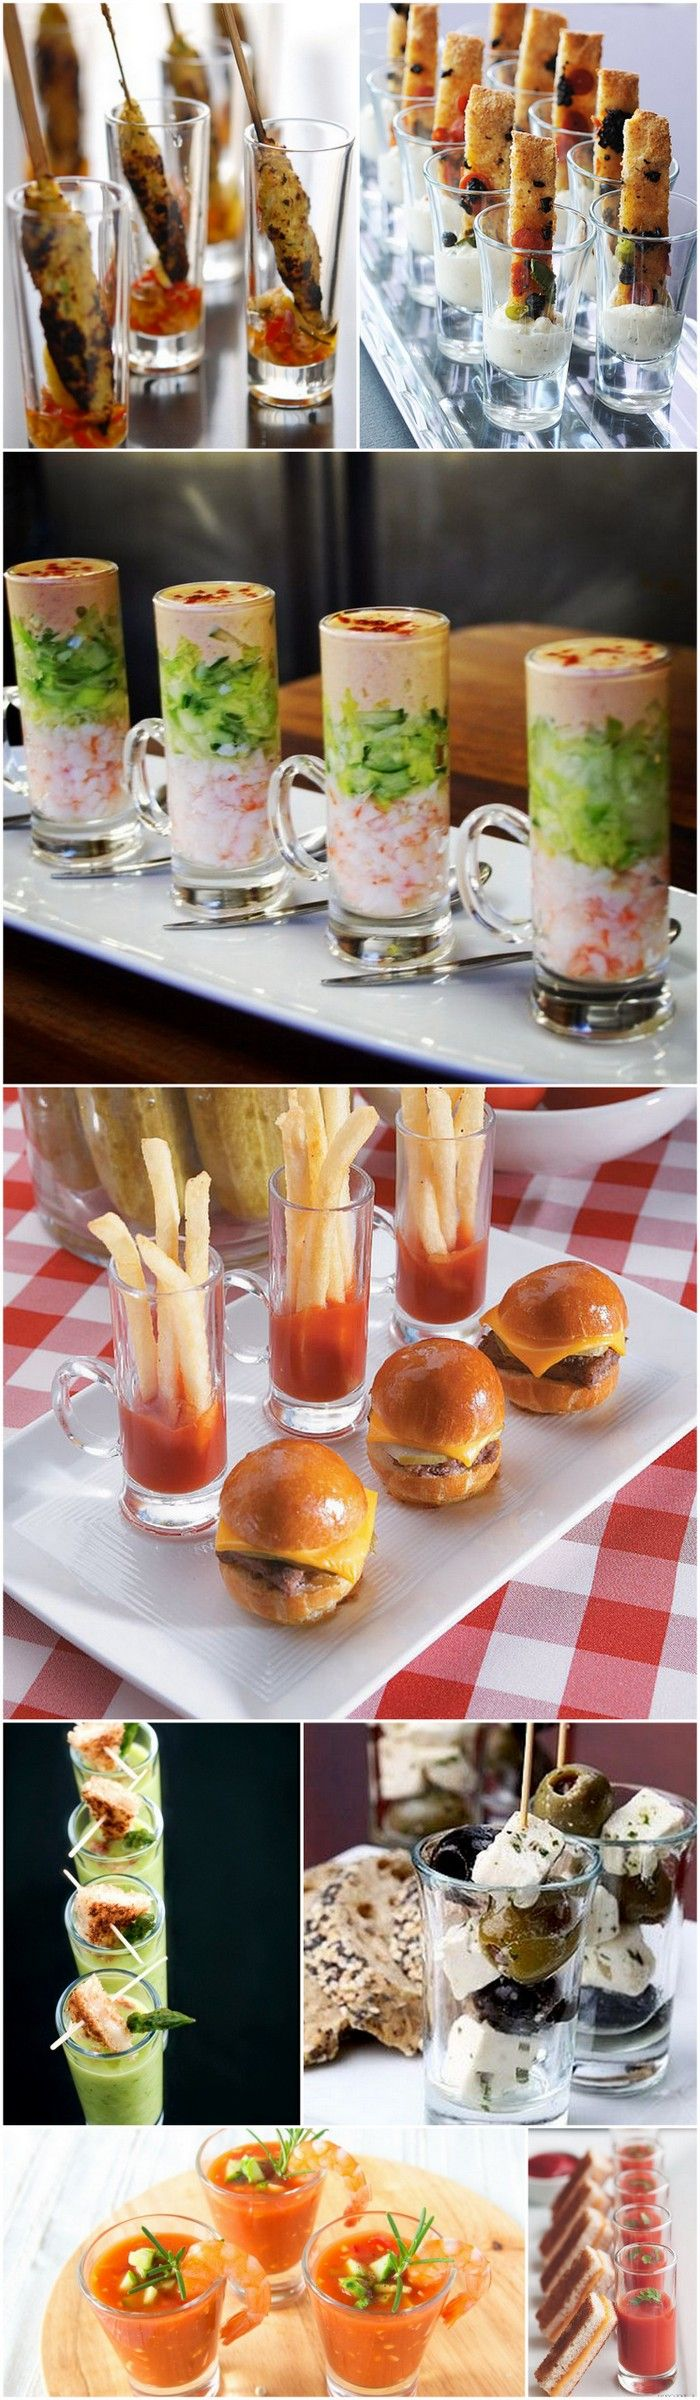 25 best ideas about party canapes on pinterest canape for Canape ideas for party